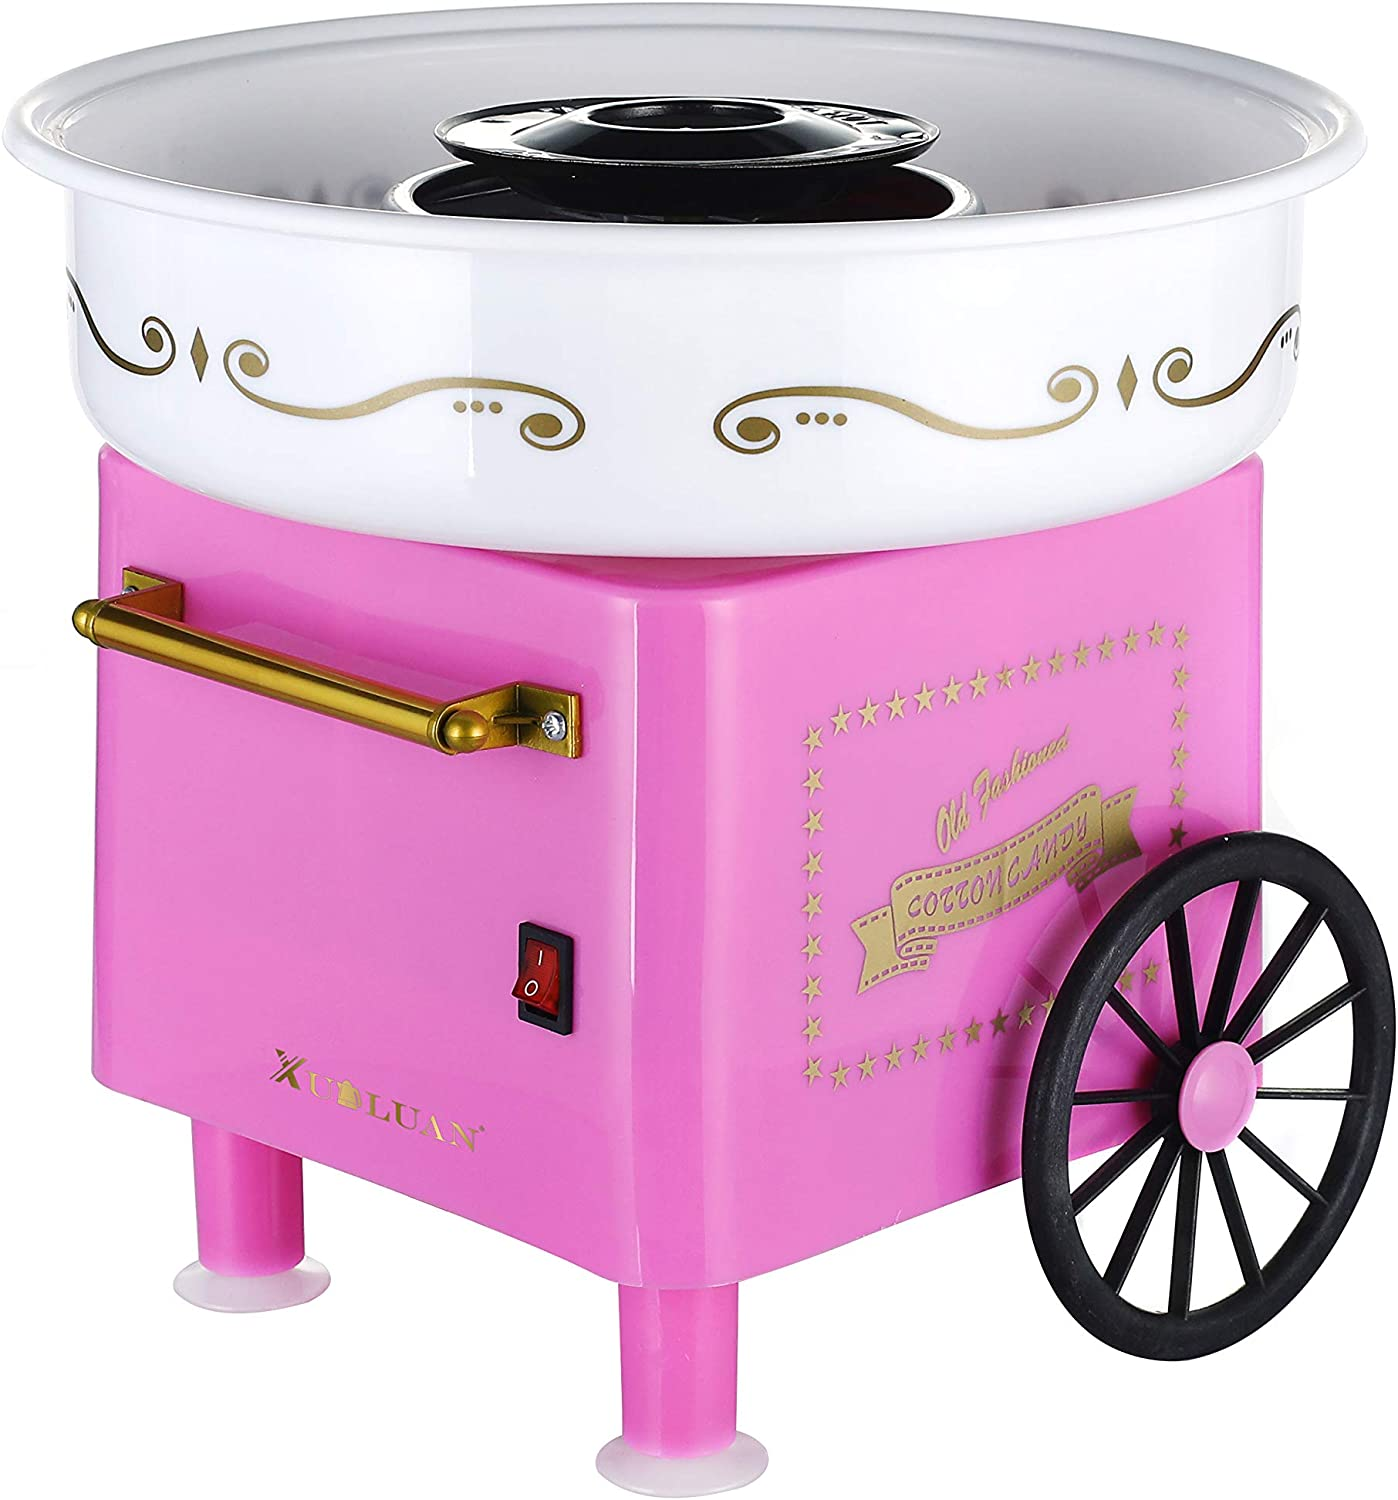 XUALUAN Cotton Candy Machine- Small Retro Cotton Candy Maker Suitable for Home Use-hard Candy and Rock Candy